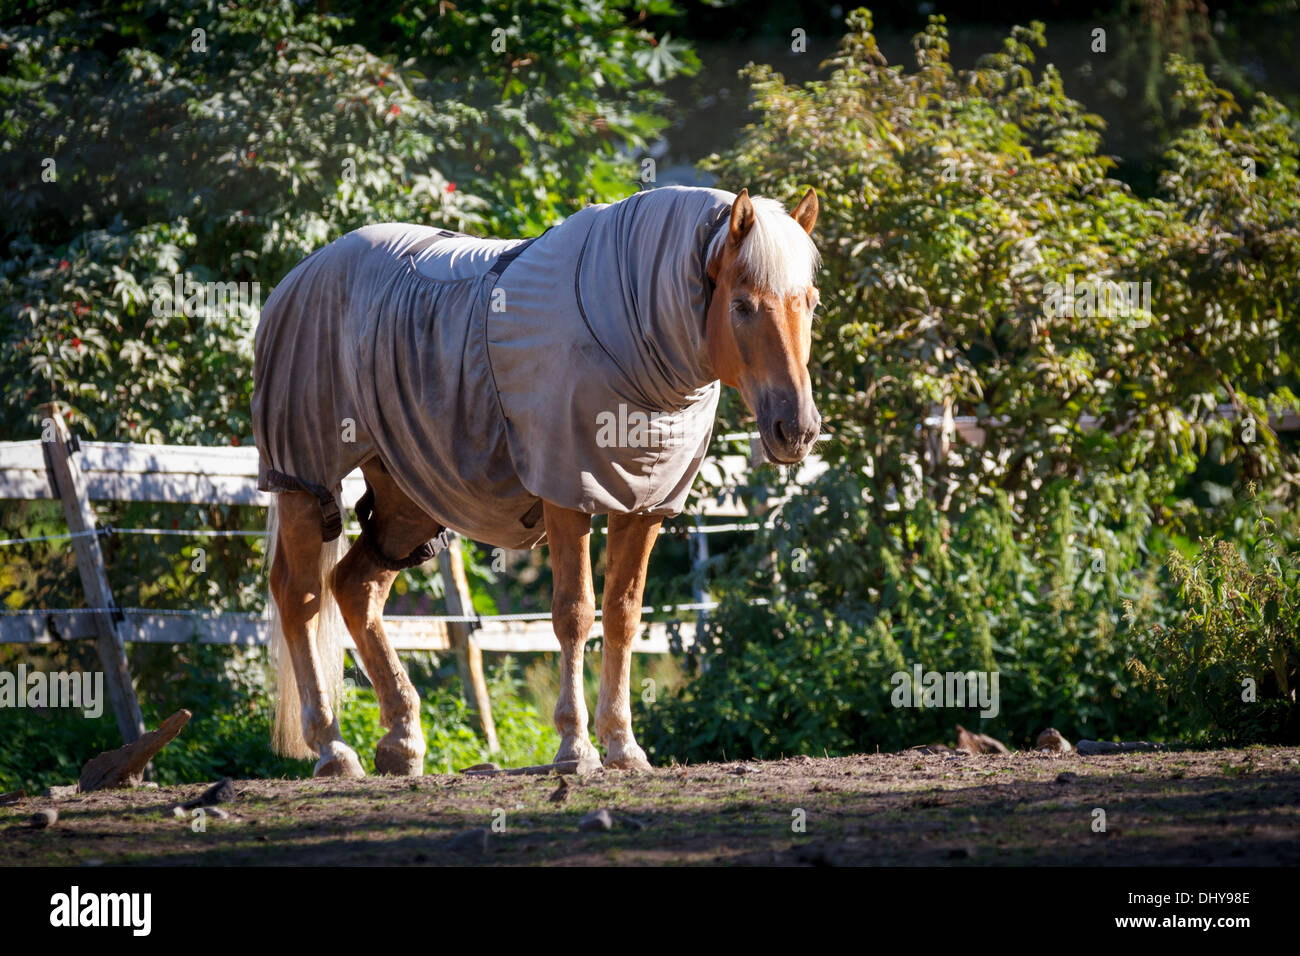 Horse clad in the warp and standing behind a fence - Stock Image